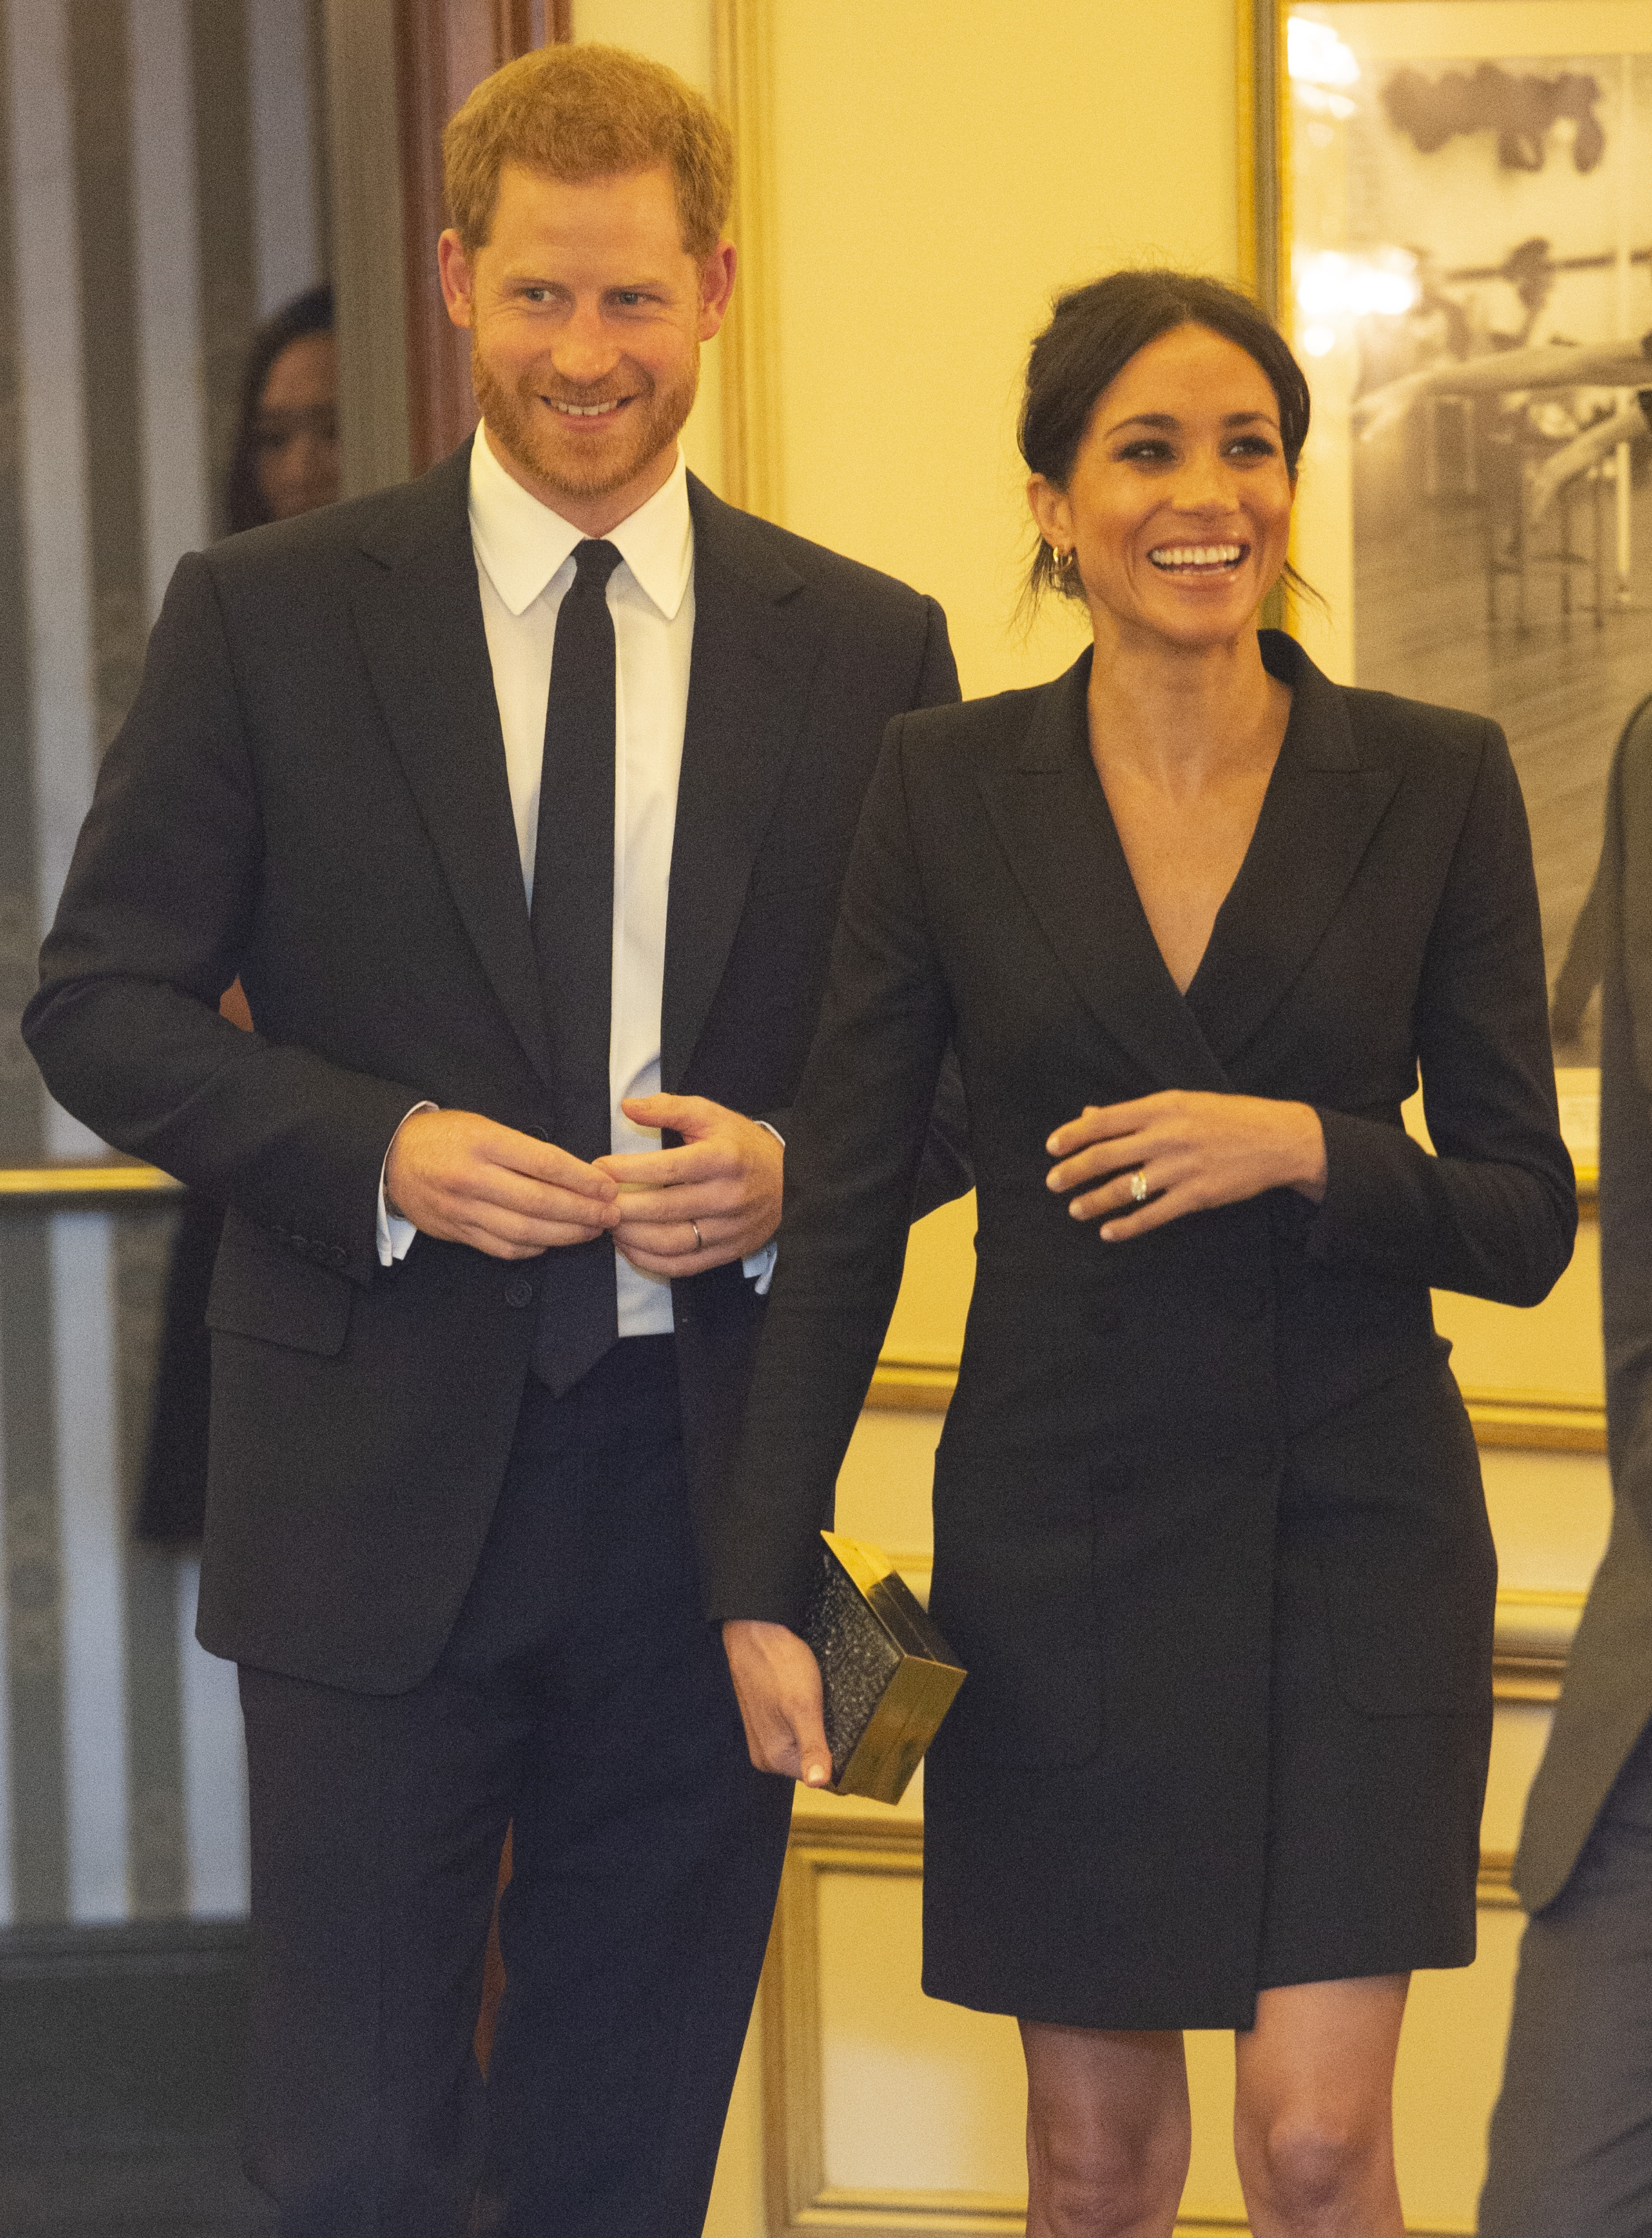 Prince Harry, Duke of Sussex and Meghan, Duchess of Sussex attend a gala performance of 'Hamilton' in support of Sentebale at Victoria Palace Theatre on August 29, 2018, in London, England. (Getty Images)